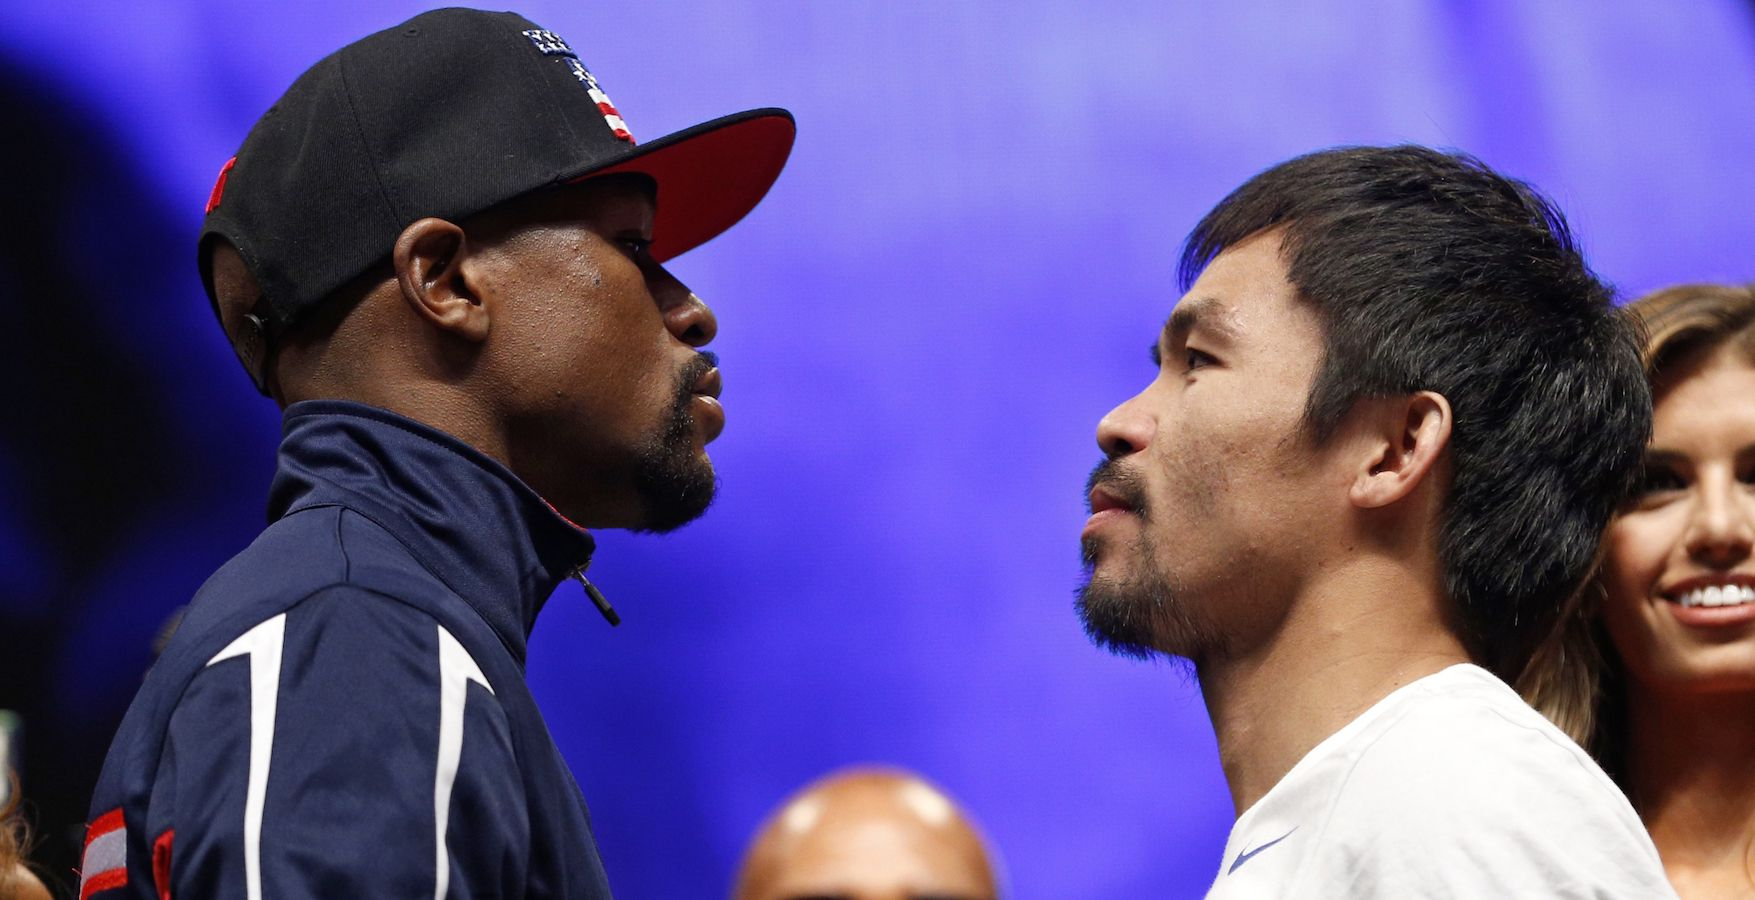 Floyd Mayweather Jr., left, and Manny Pacquiao pose during their weigh-in on Friday, May 1, 2015 in Las Vegas. The world weltherweight title fight between Mayweather Jr. and Pacquiao is scheduled for May 2. (AP Photo/John Locher)